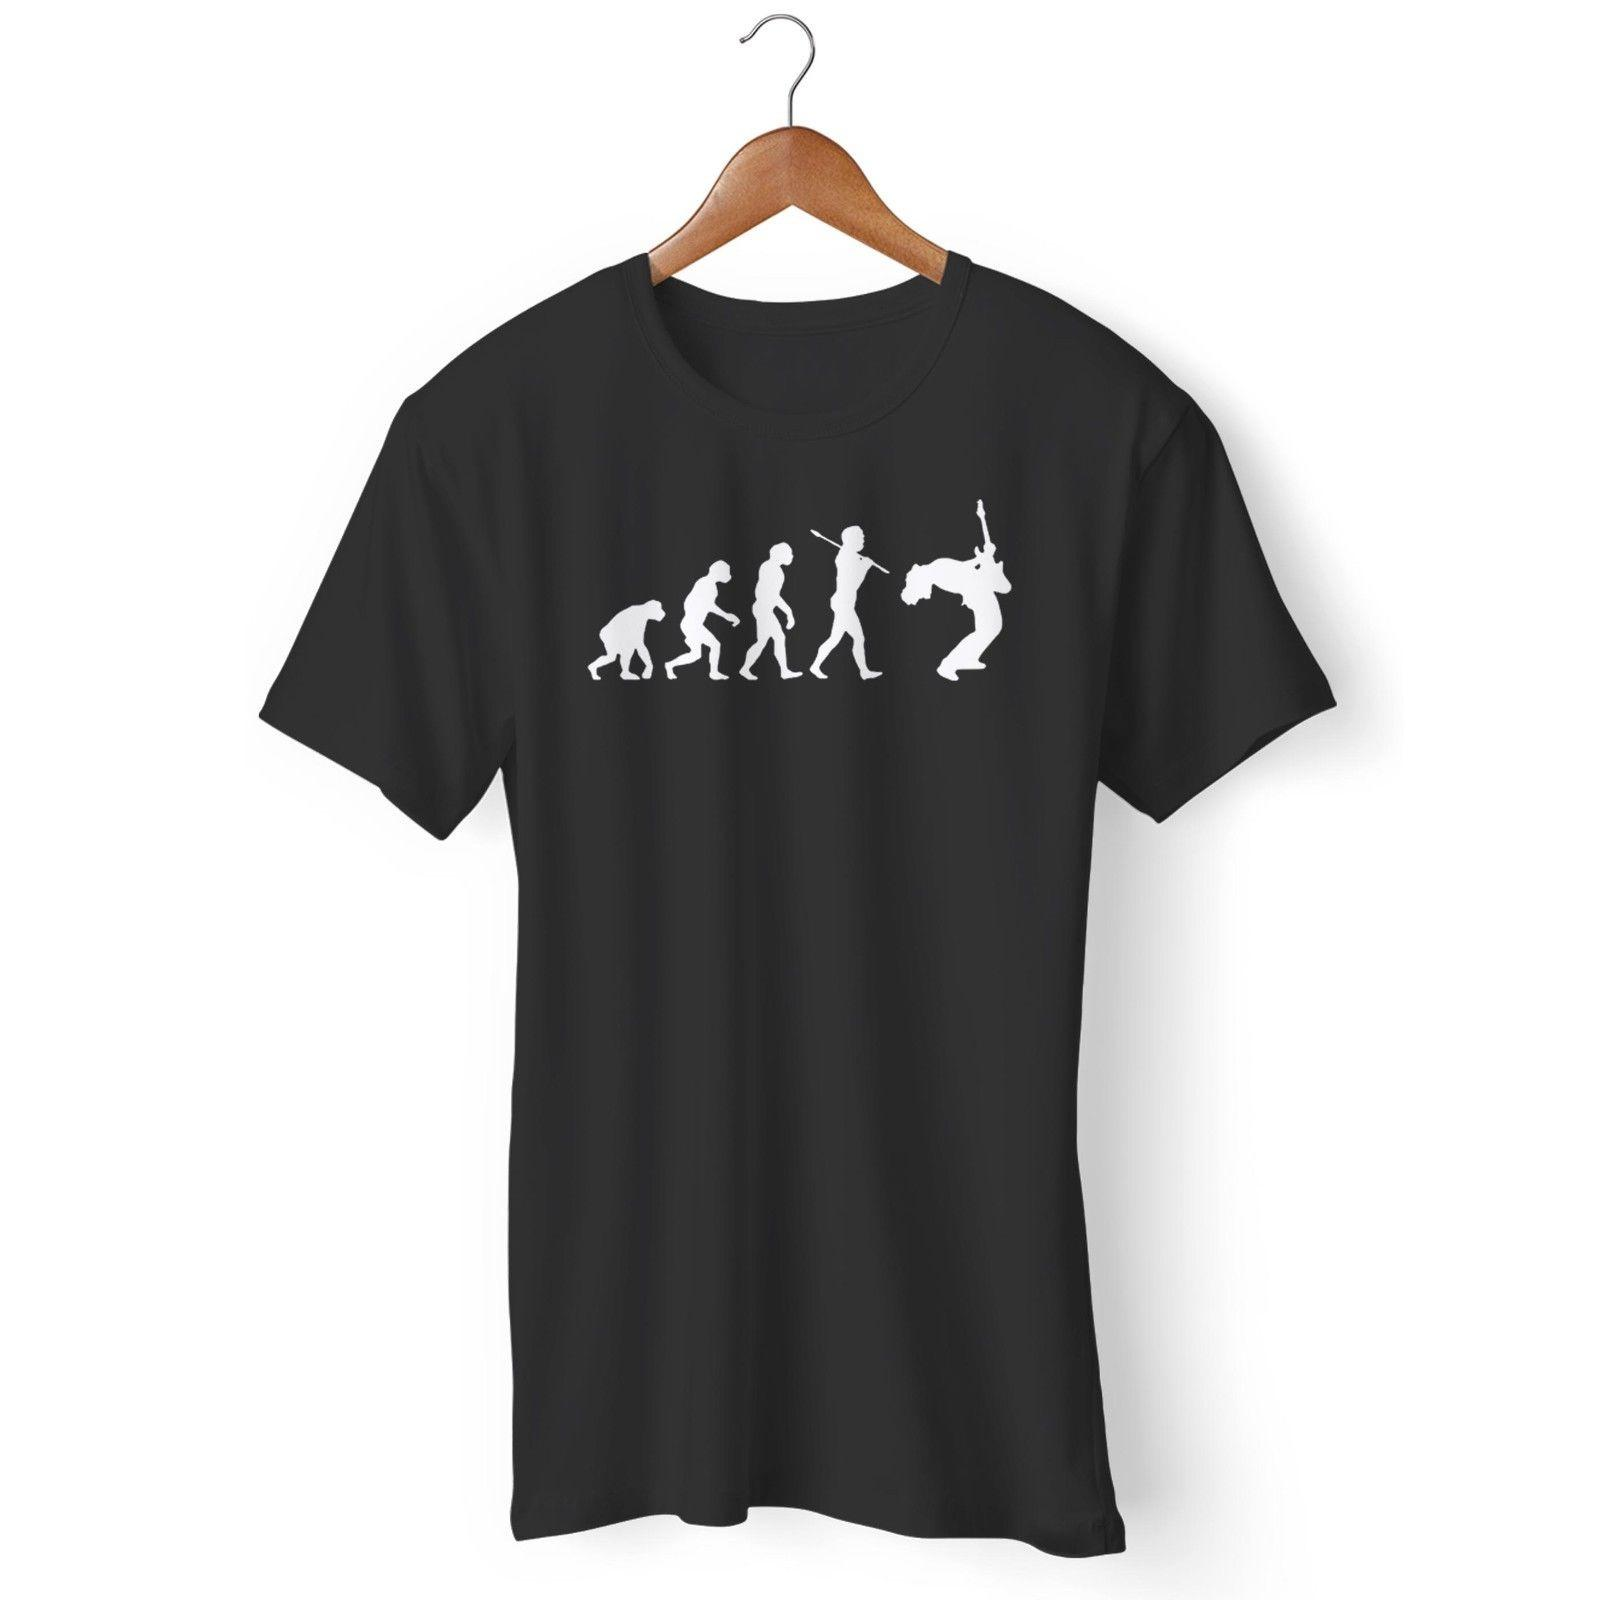 27e93520a735 Guitar Player Evolution Cool Musician Man S   Woman S T Shirt Funny Unisex  Casual Tee Gift Cool And Funny T Shirts Buy A T Shirt From Trendsspace